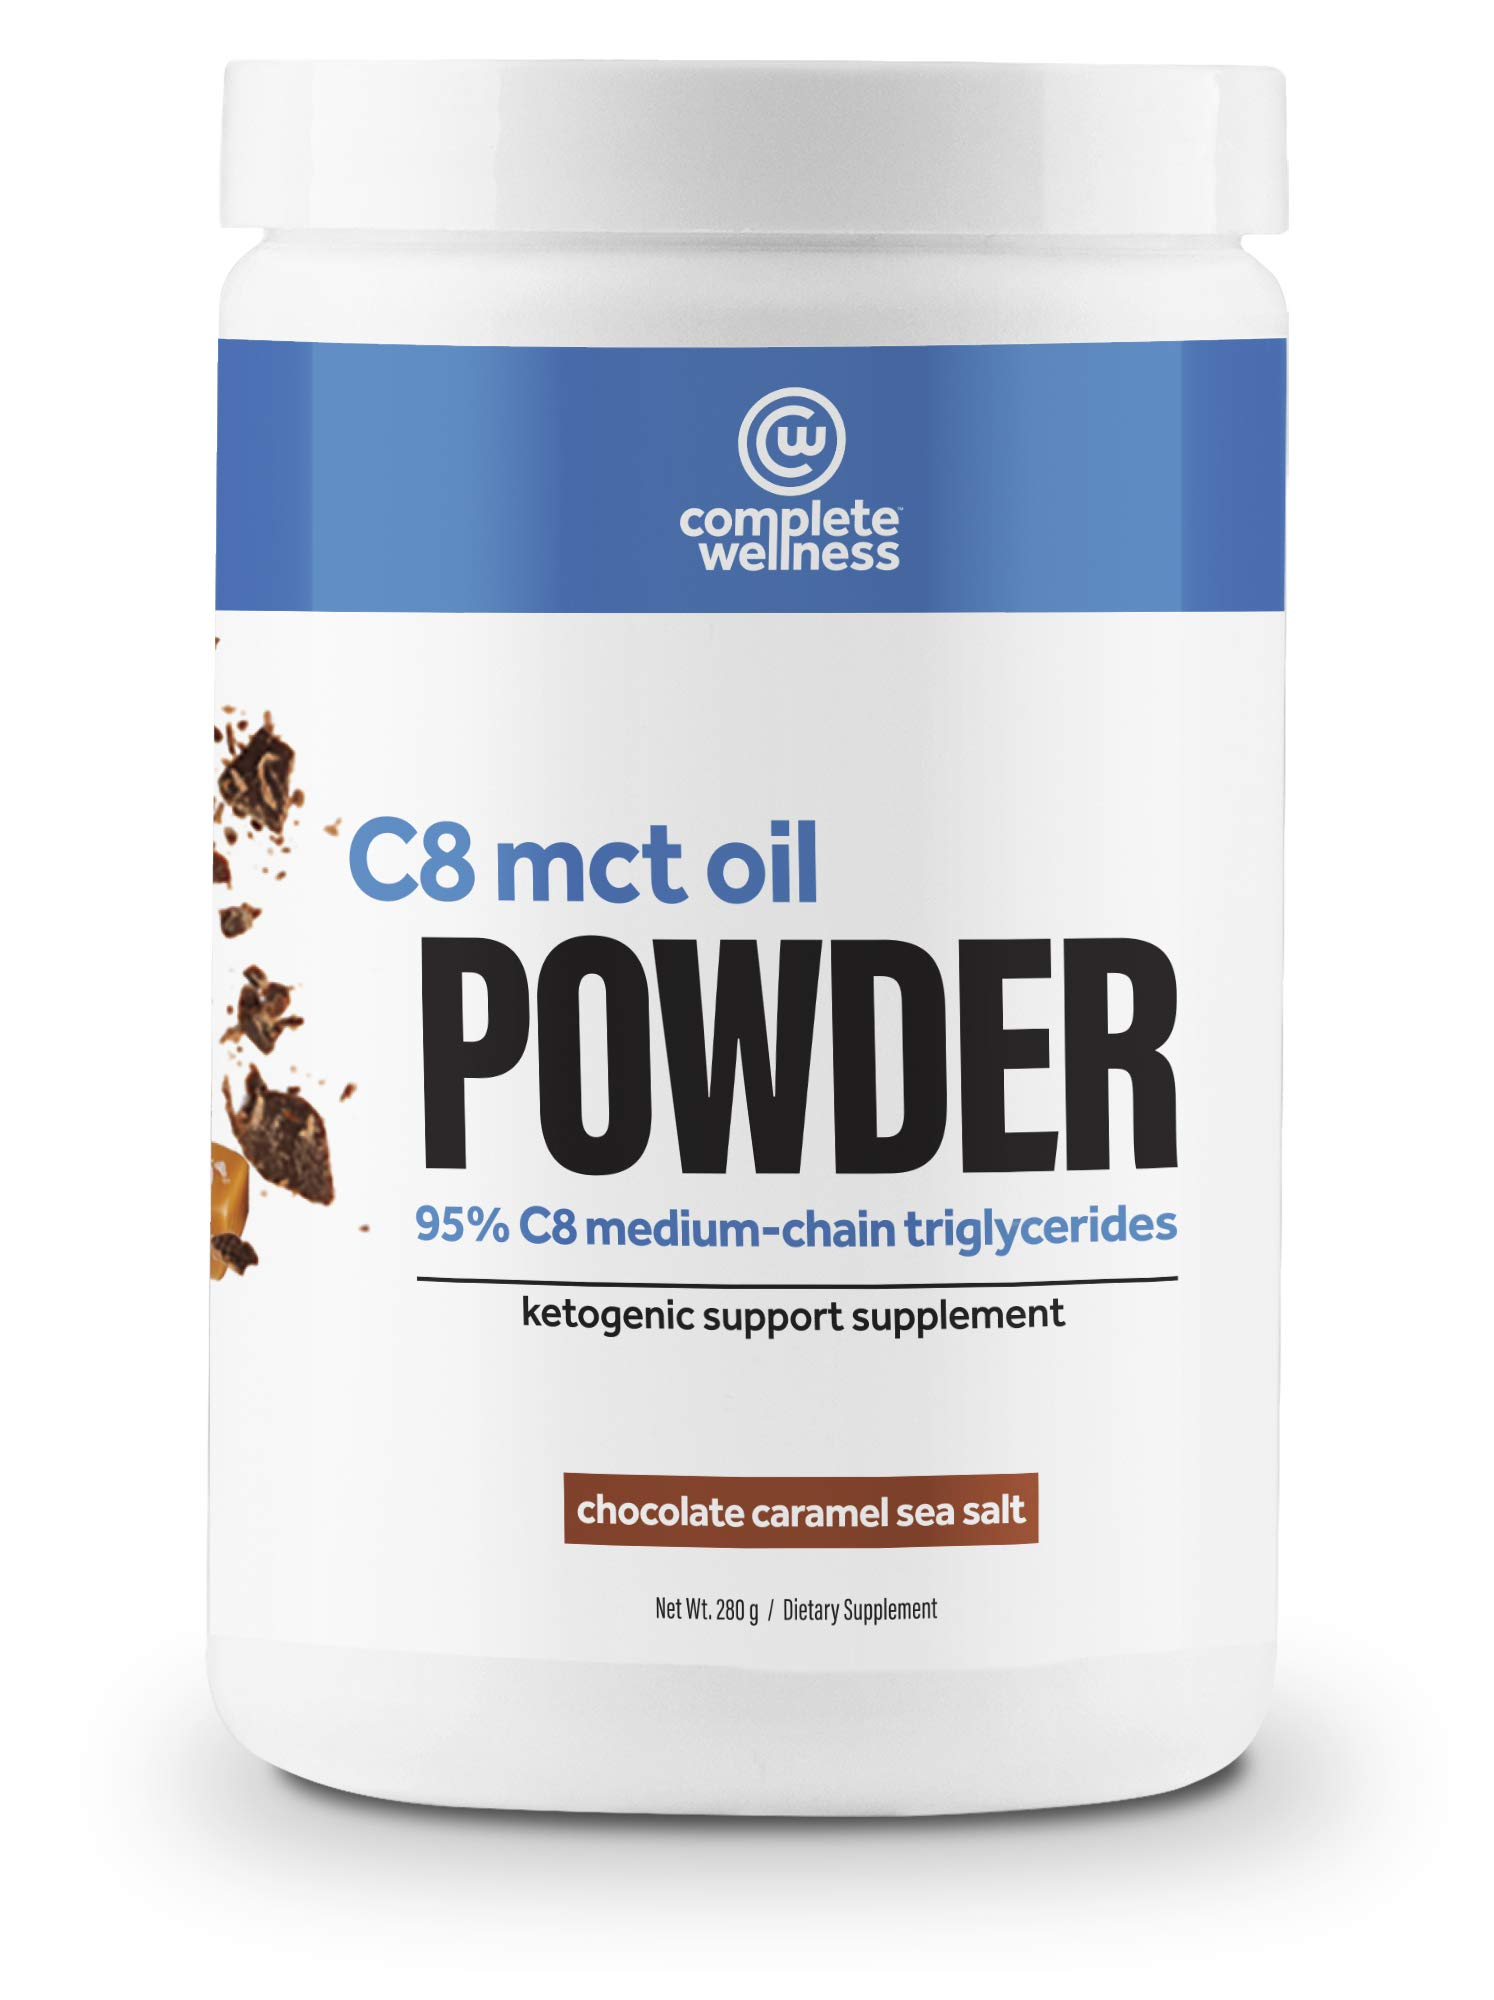 Complete Wellness C8 MCT Oil Powder 30 Servings - Chocolate Caramel Sea Salt - High Quality MCT Oil, Perfect for Keto